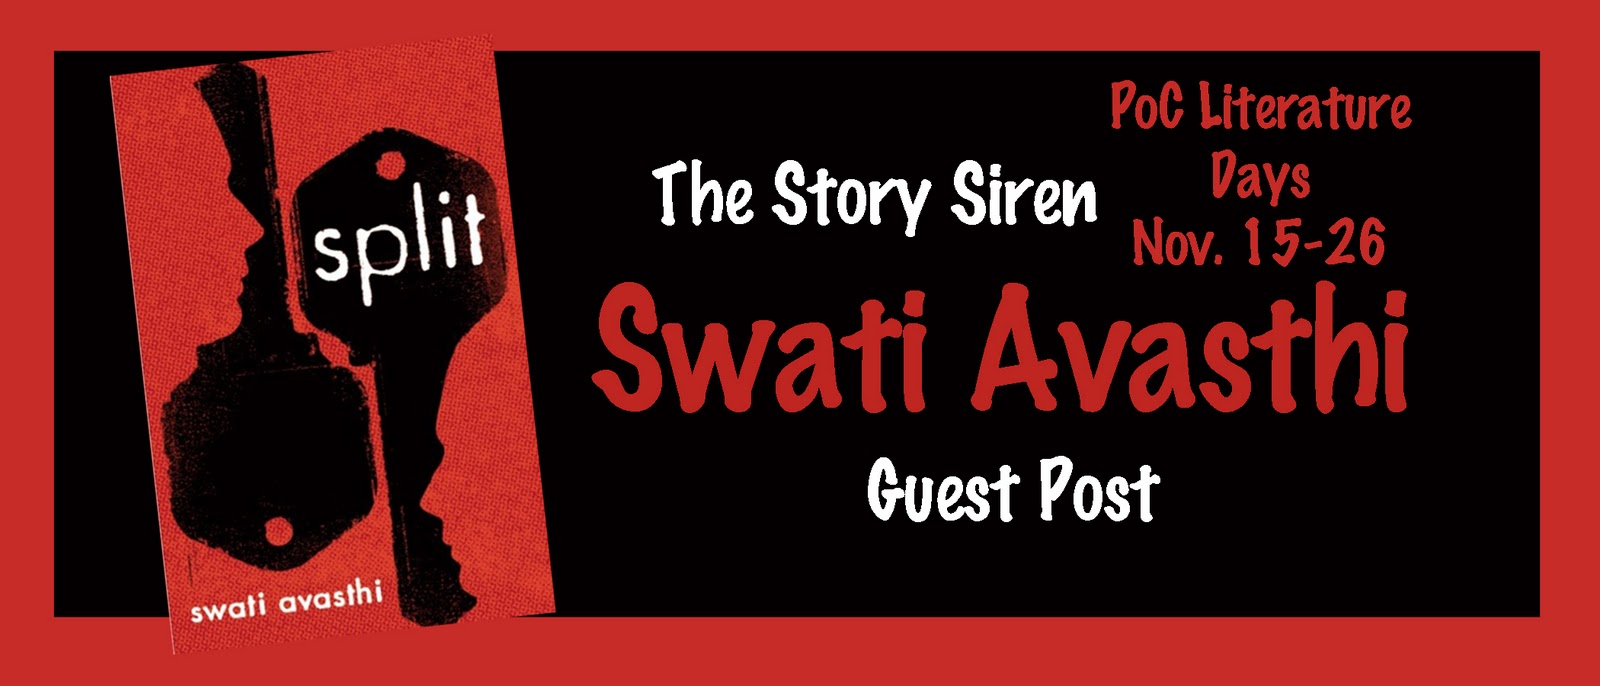 Guest Post: Swati Avasthi